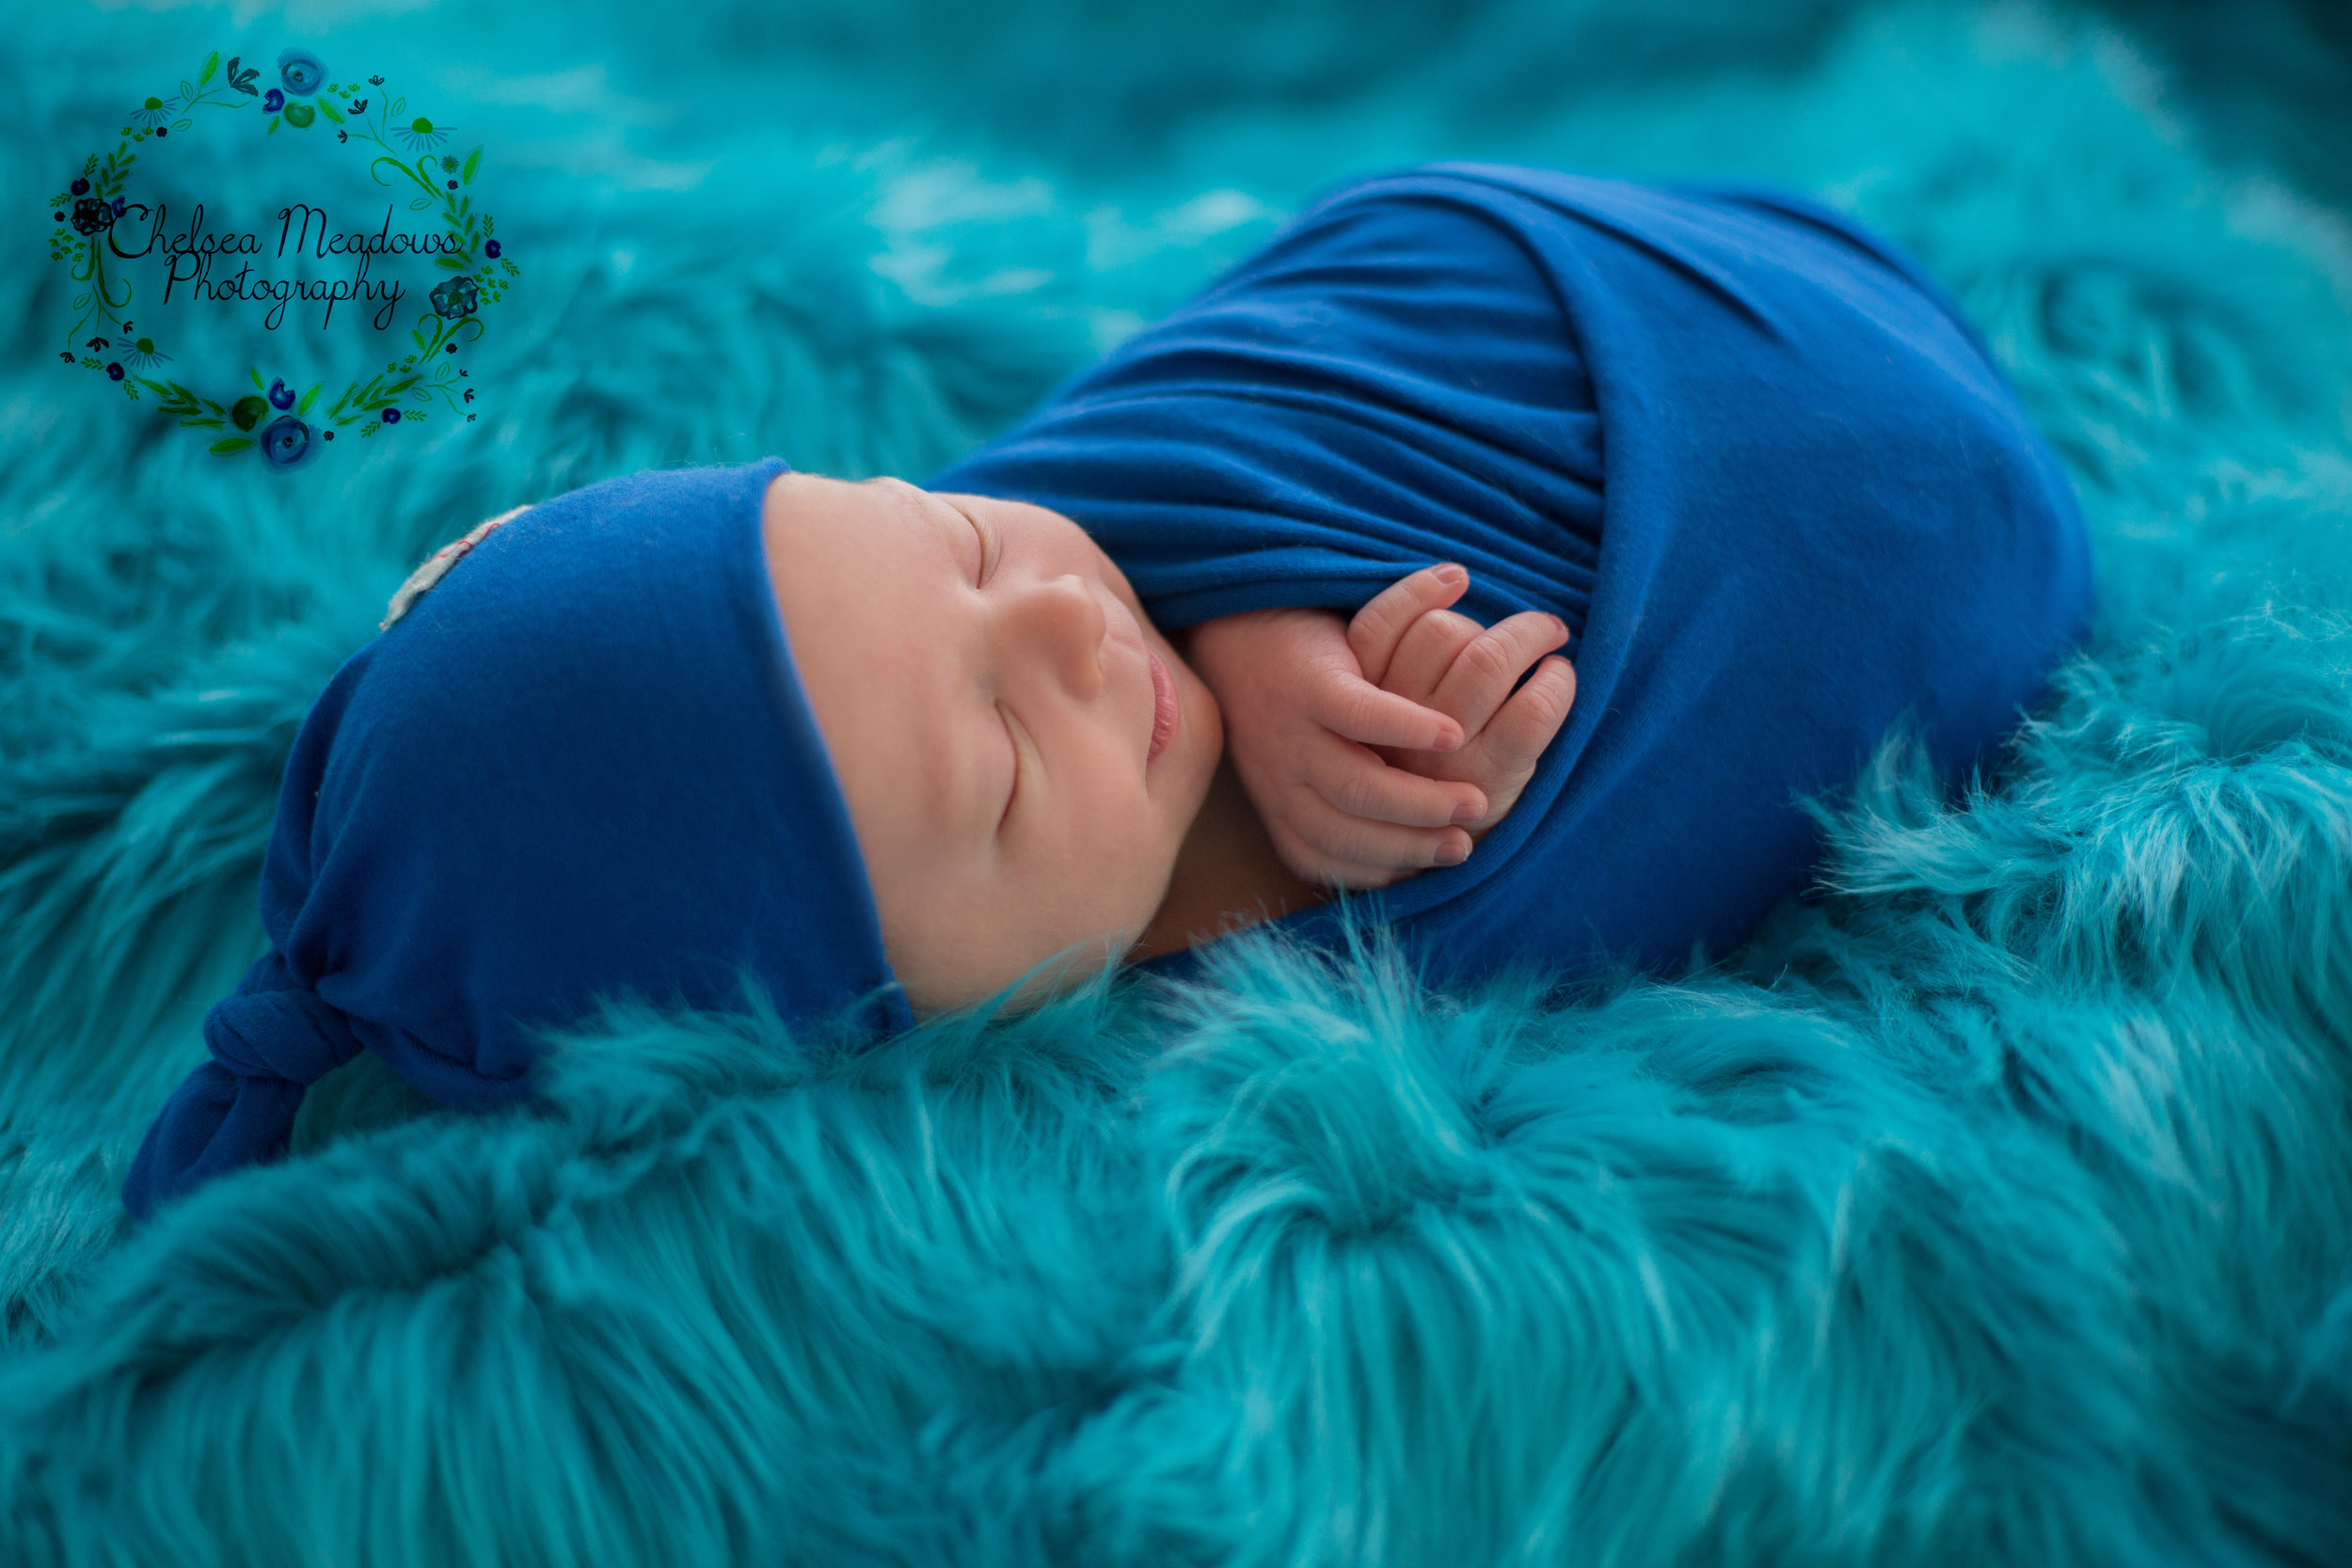 Owen Newborn Session - SM - Nashville Newborn Photographer - Chelsea Meadows Photography (9)_edited-1.jpg